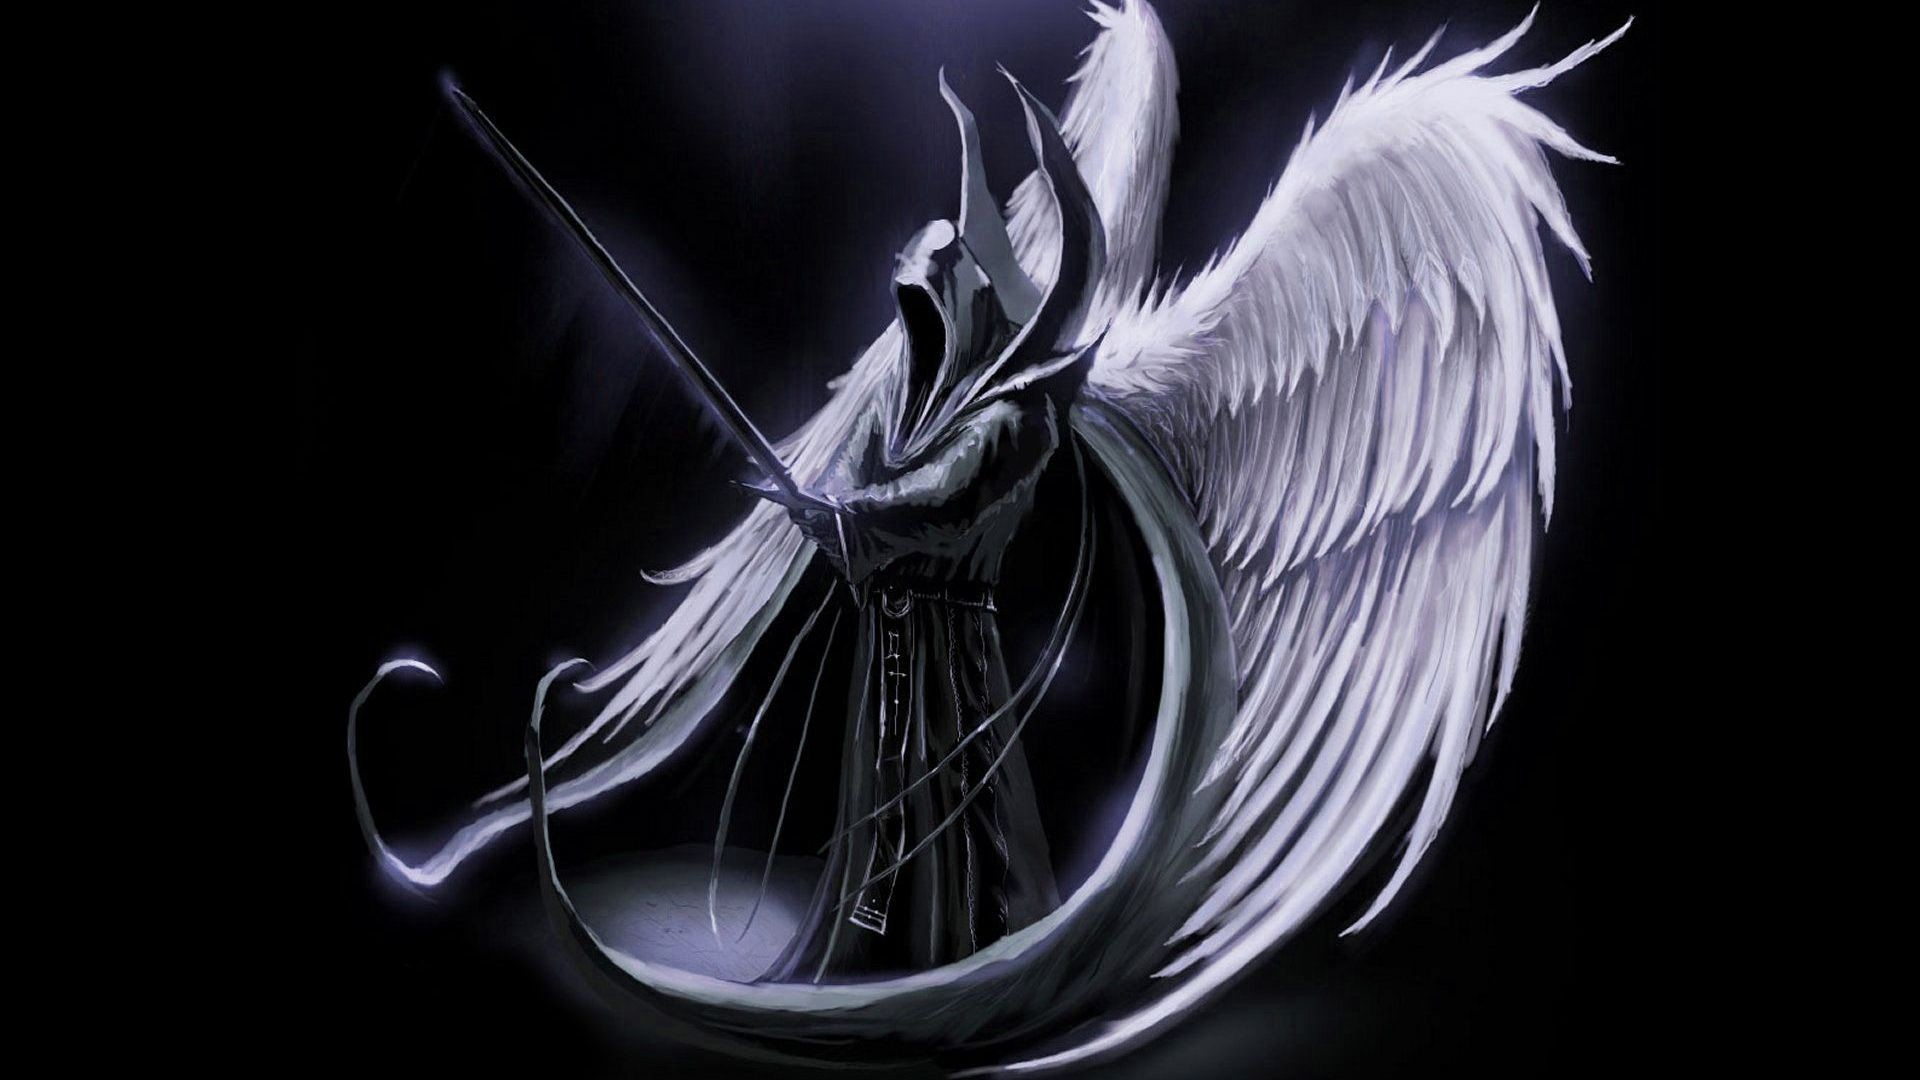 1920x1080 Angel wallpapers badass